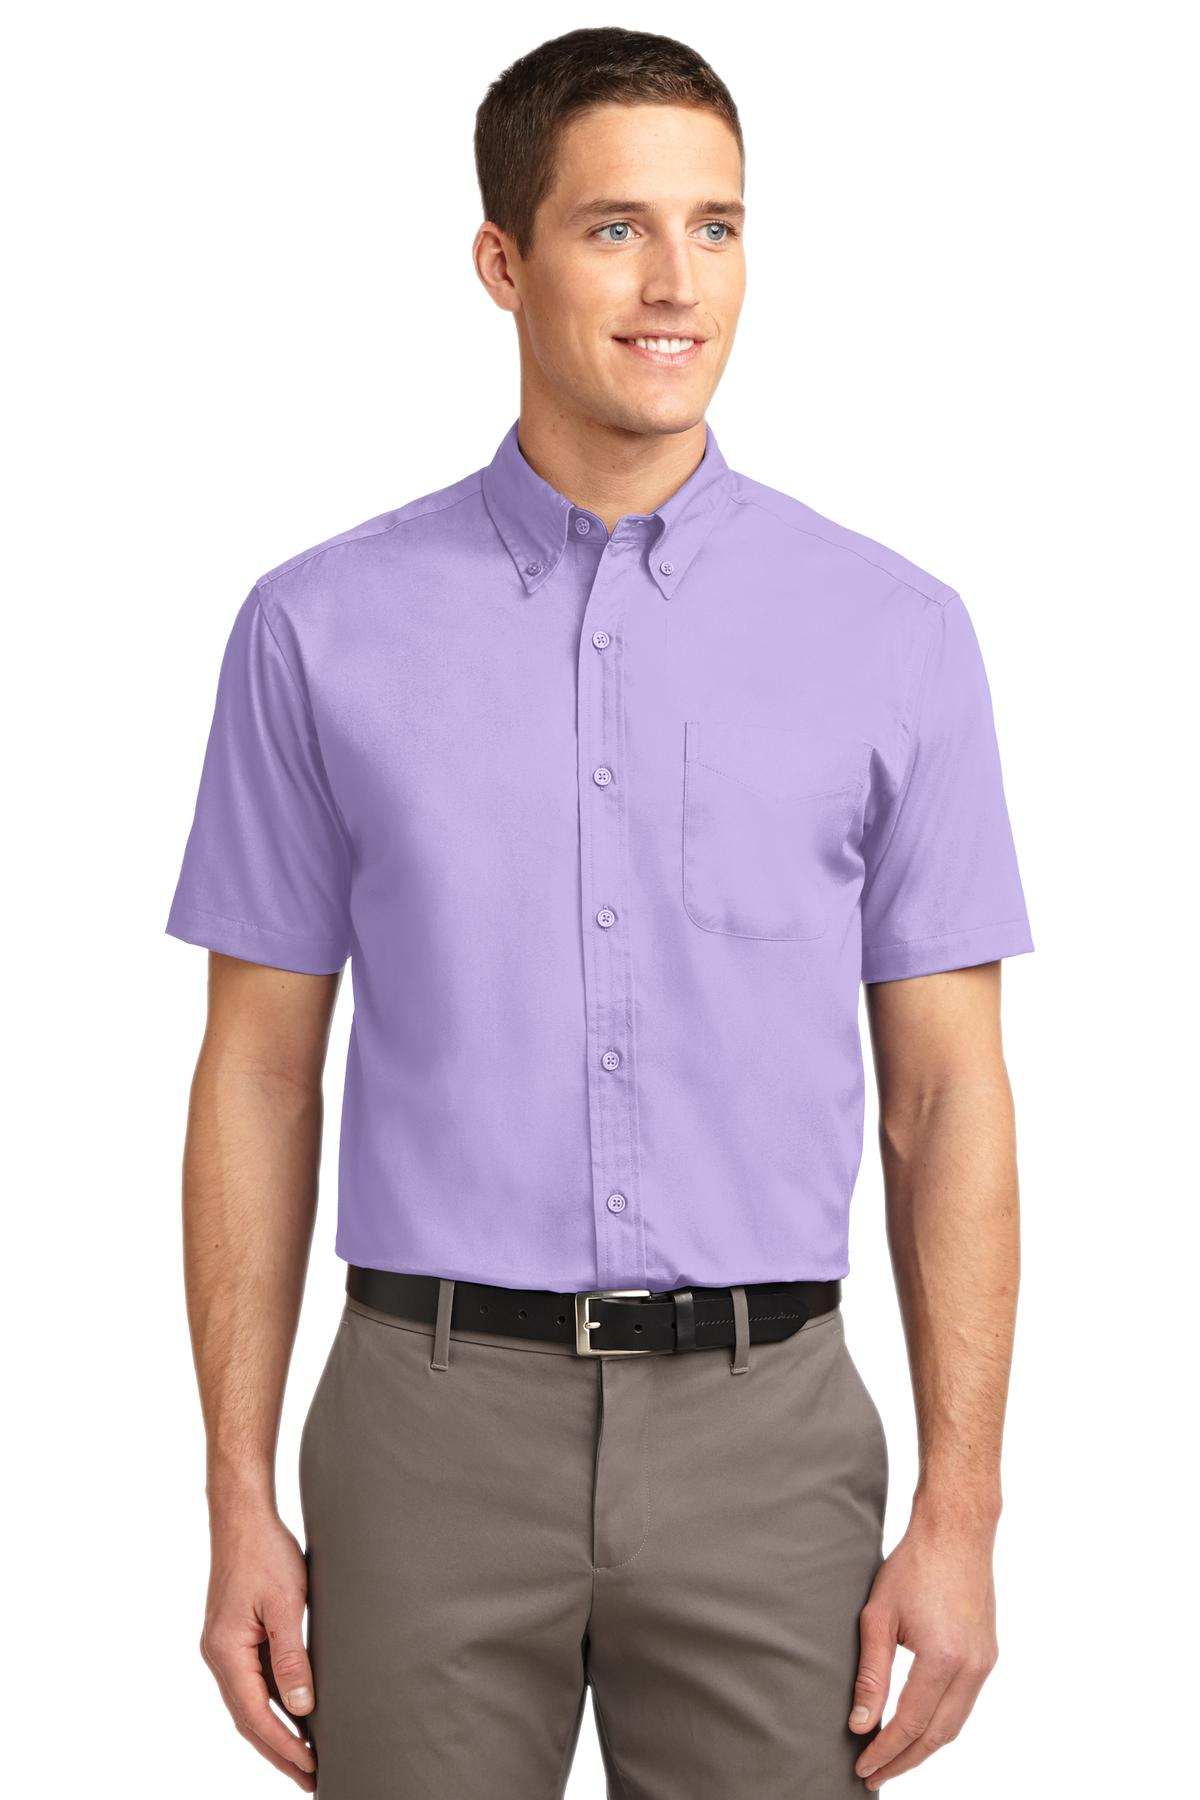 Port Authority ®  Short Sleeve Easy Care Shirt.  S508 - Bright Lavender